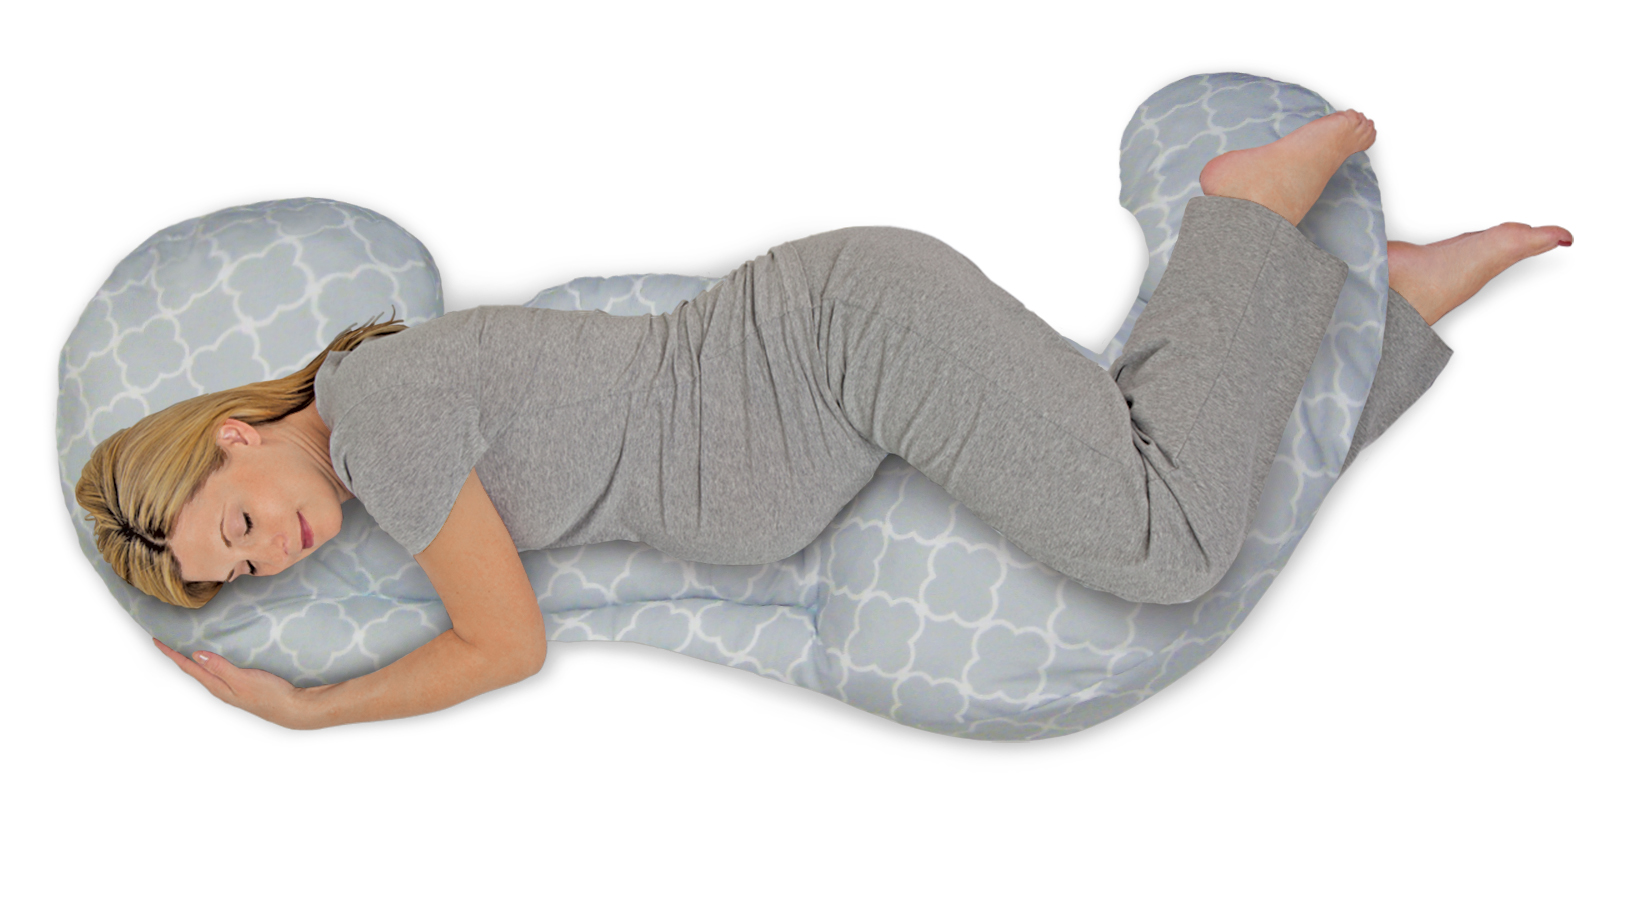 baby boppy chair recall outdoor covers nz pregnancy let s talk about preventing stillbirth products mom total fit pillow